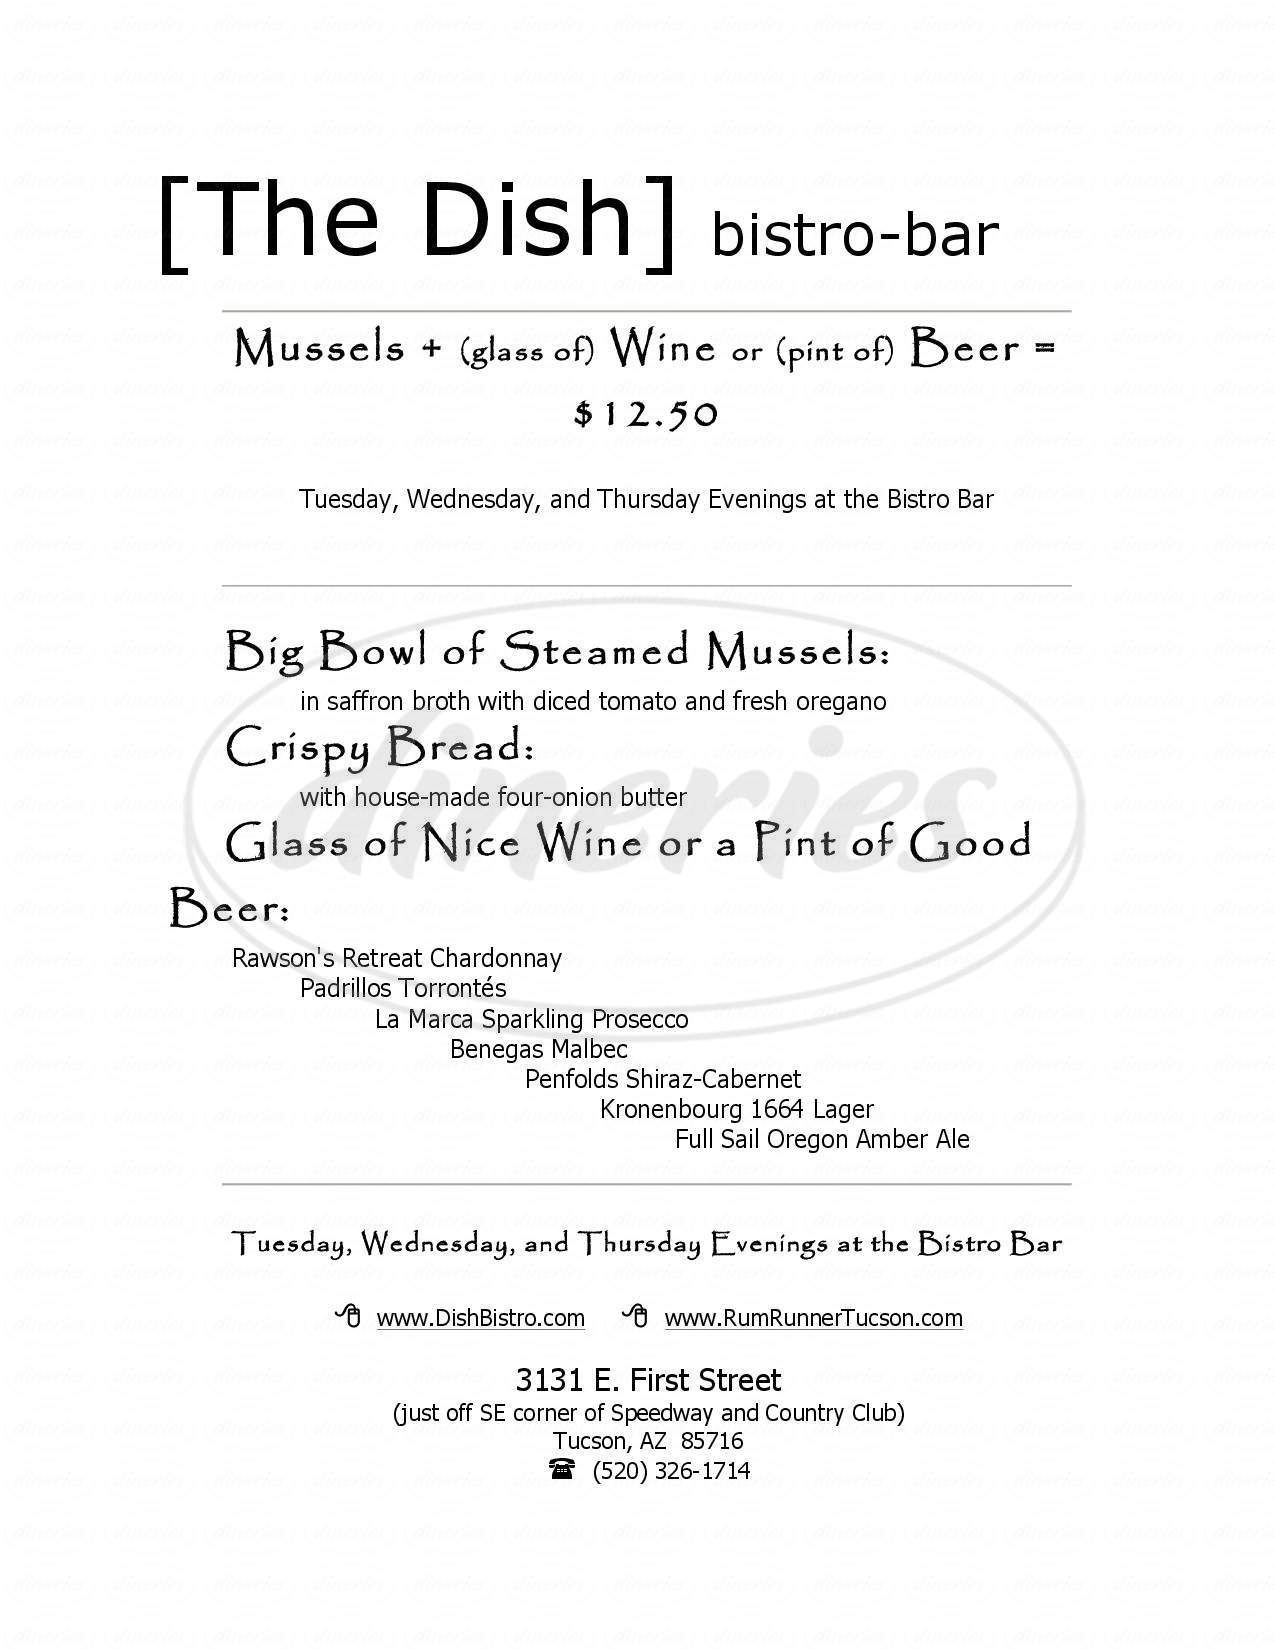 menu for The Dish Bistro